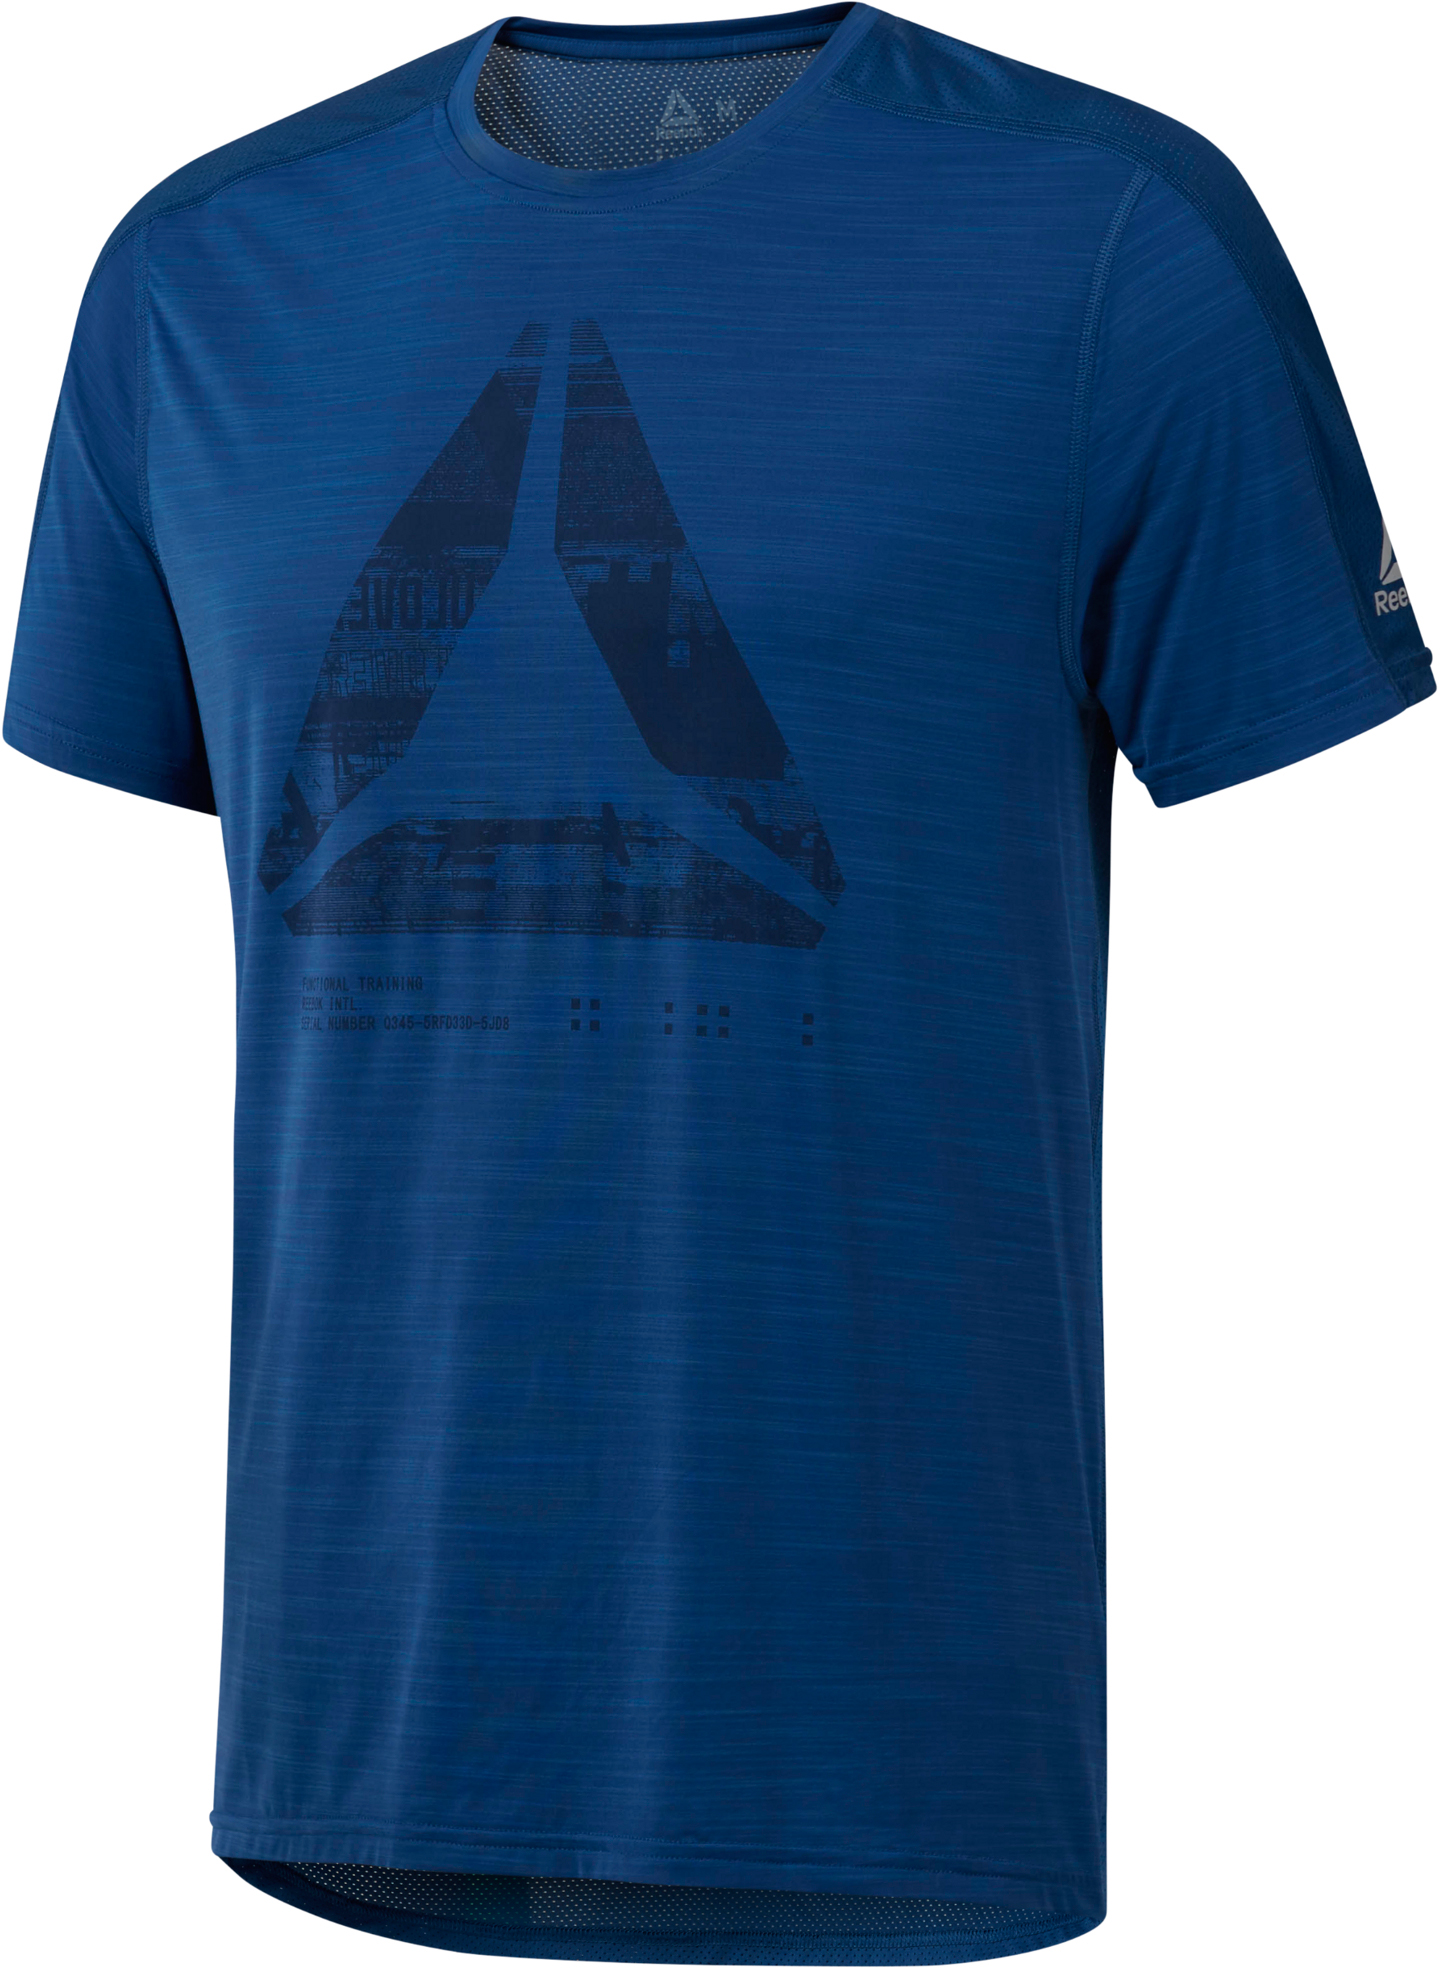 Reebok AC Graphic Move Tee | Jerseys